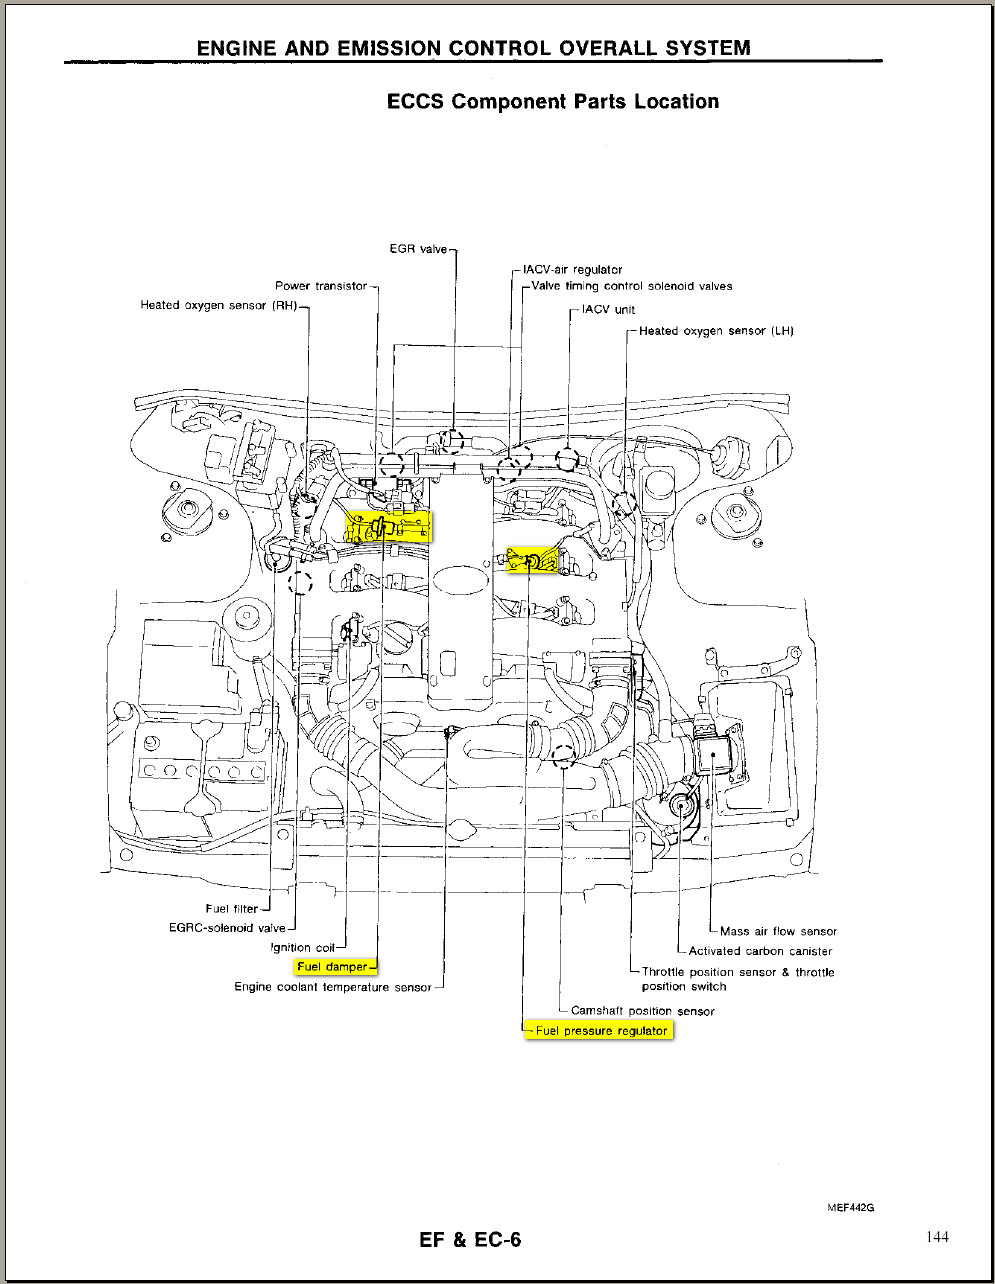 1993 Toyota Paseo Engine Diagram Hose For Infiniti J30 Electrical Wiring Fuel Injector U2022 T100